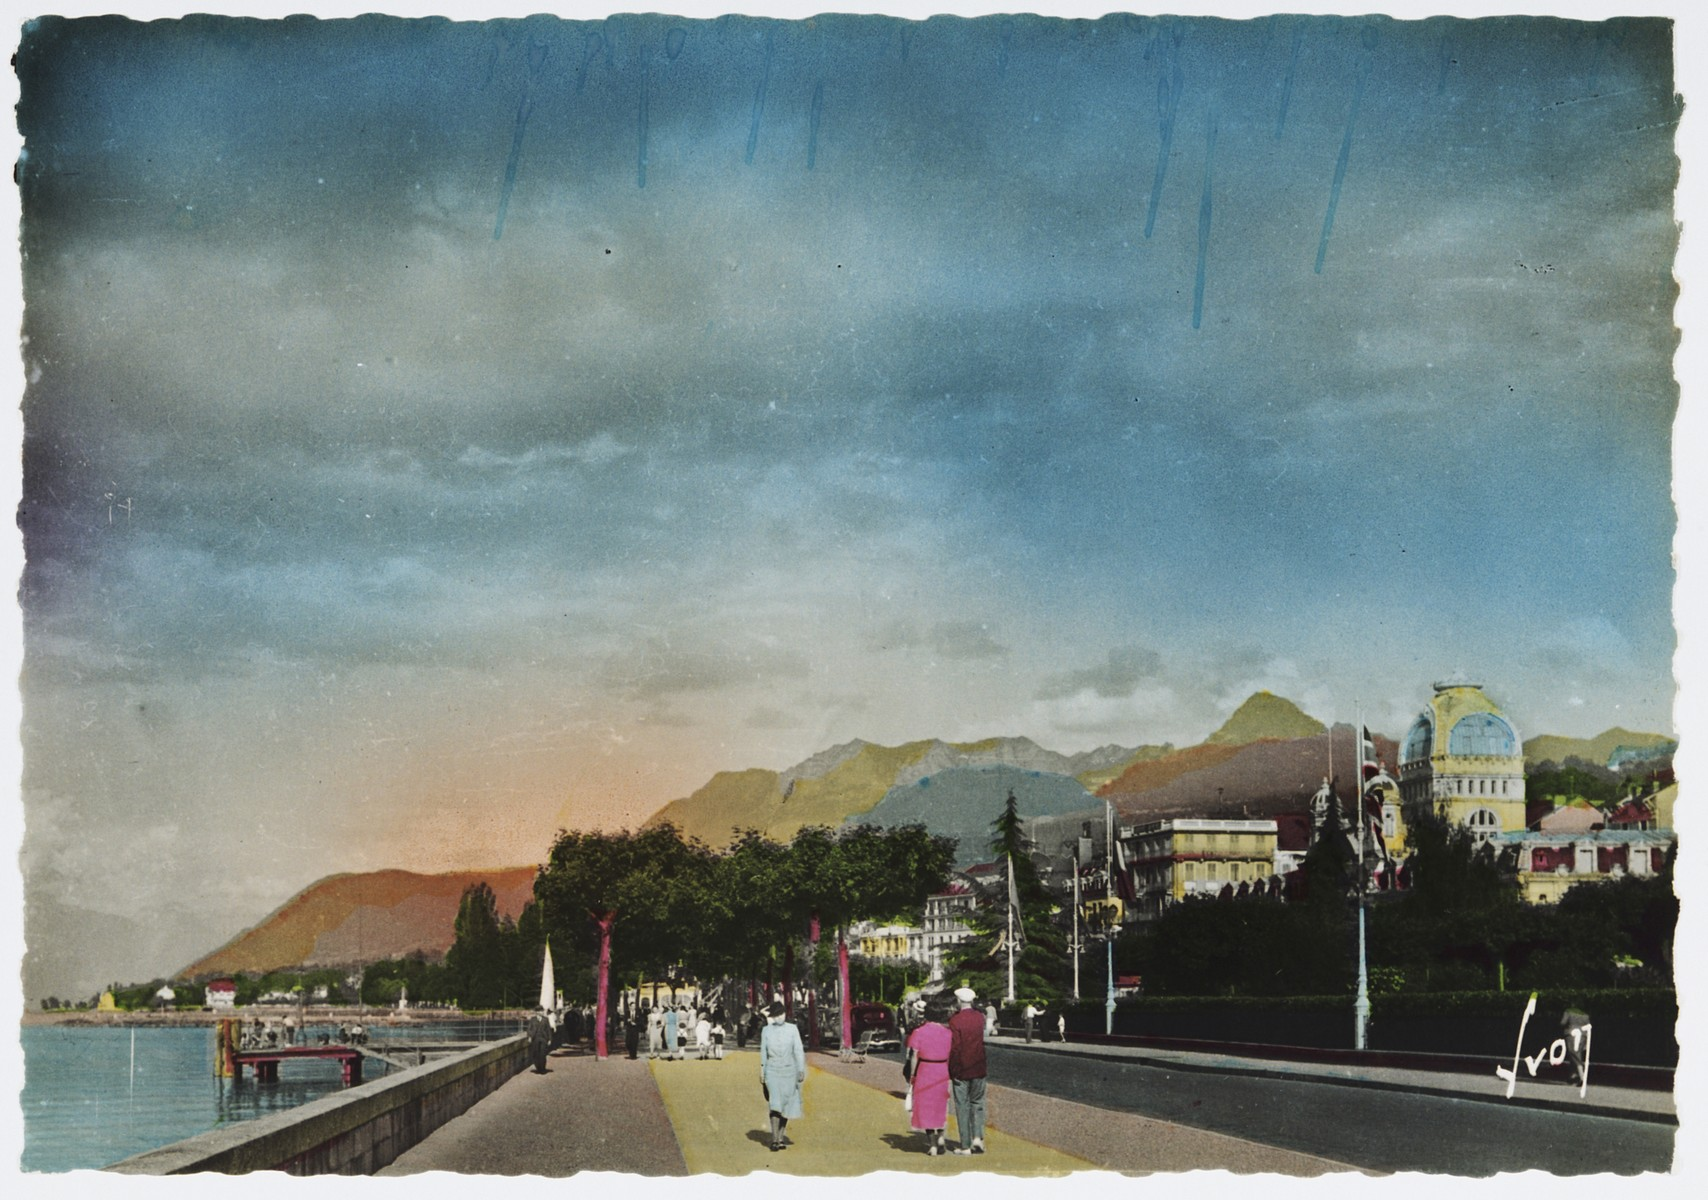 Period postcard of Evian-les-Bains, the site of the 1938 International Conference on Refugees.